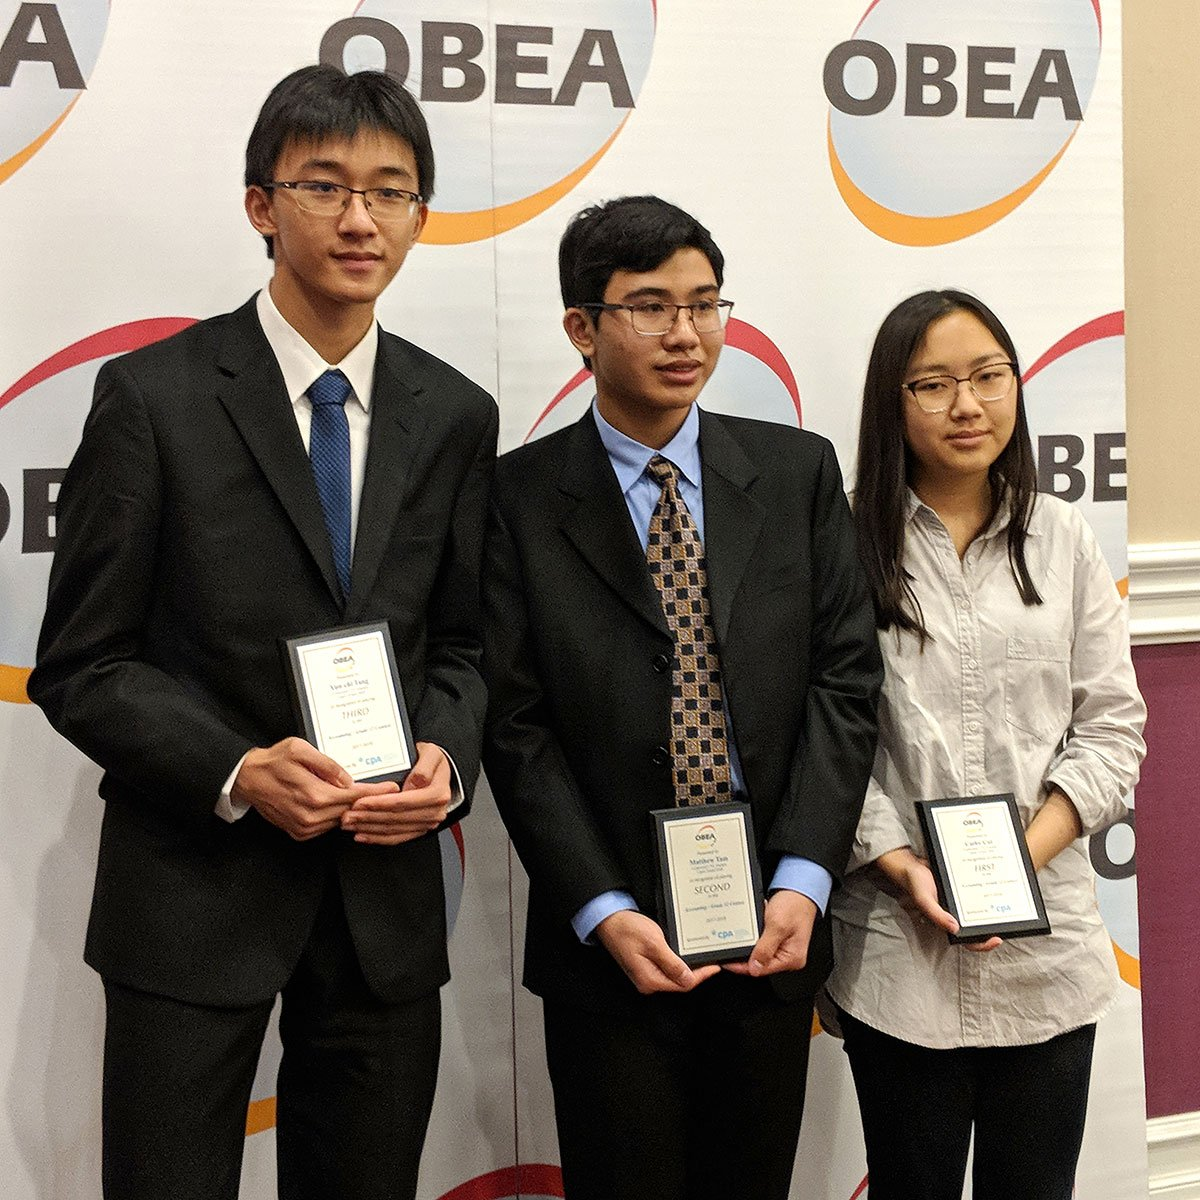 Grade 11 students from CCVI placed first, second, and third at the OBEA accounting contest.